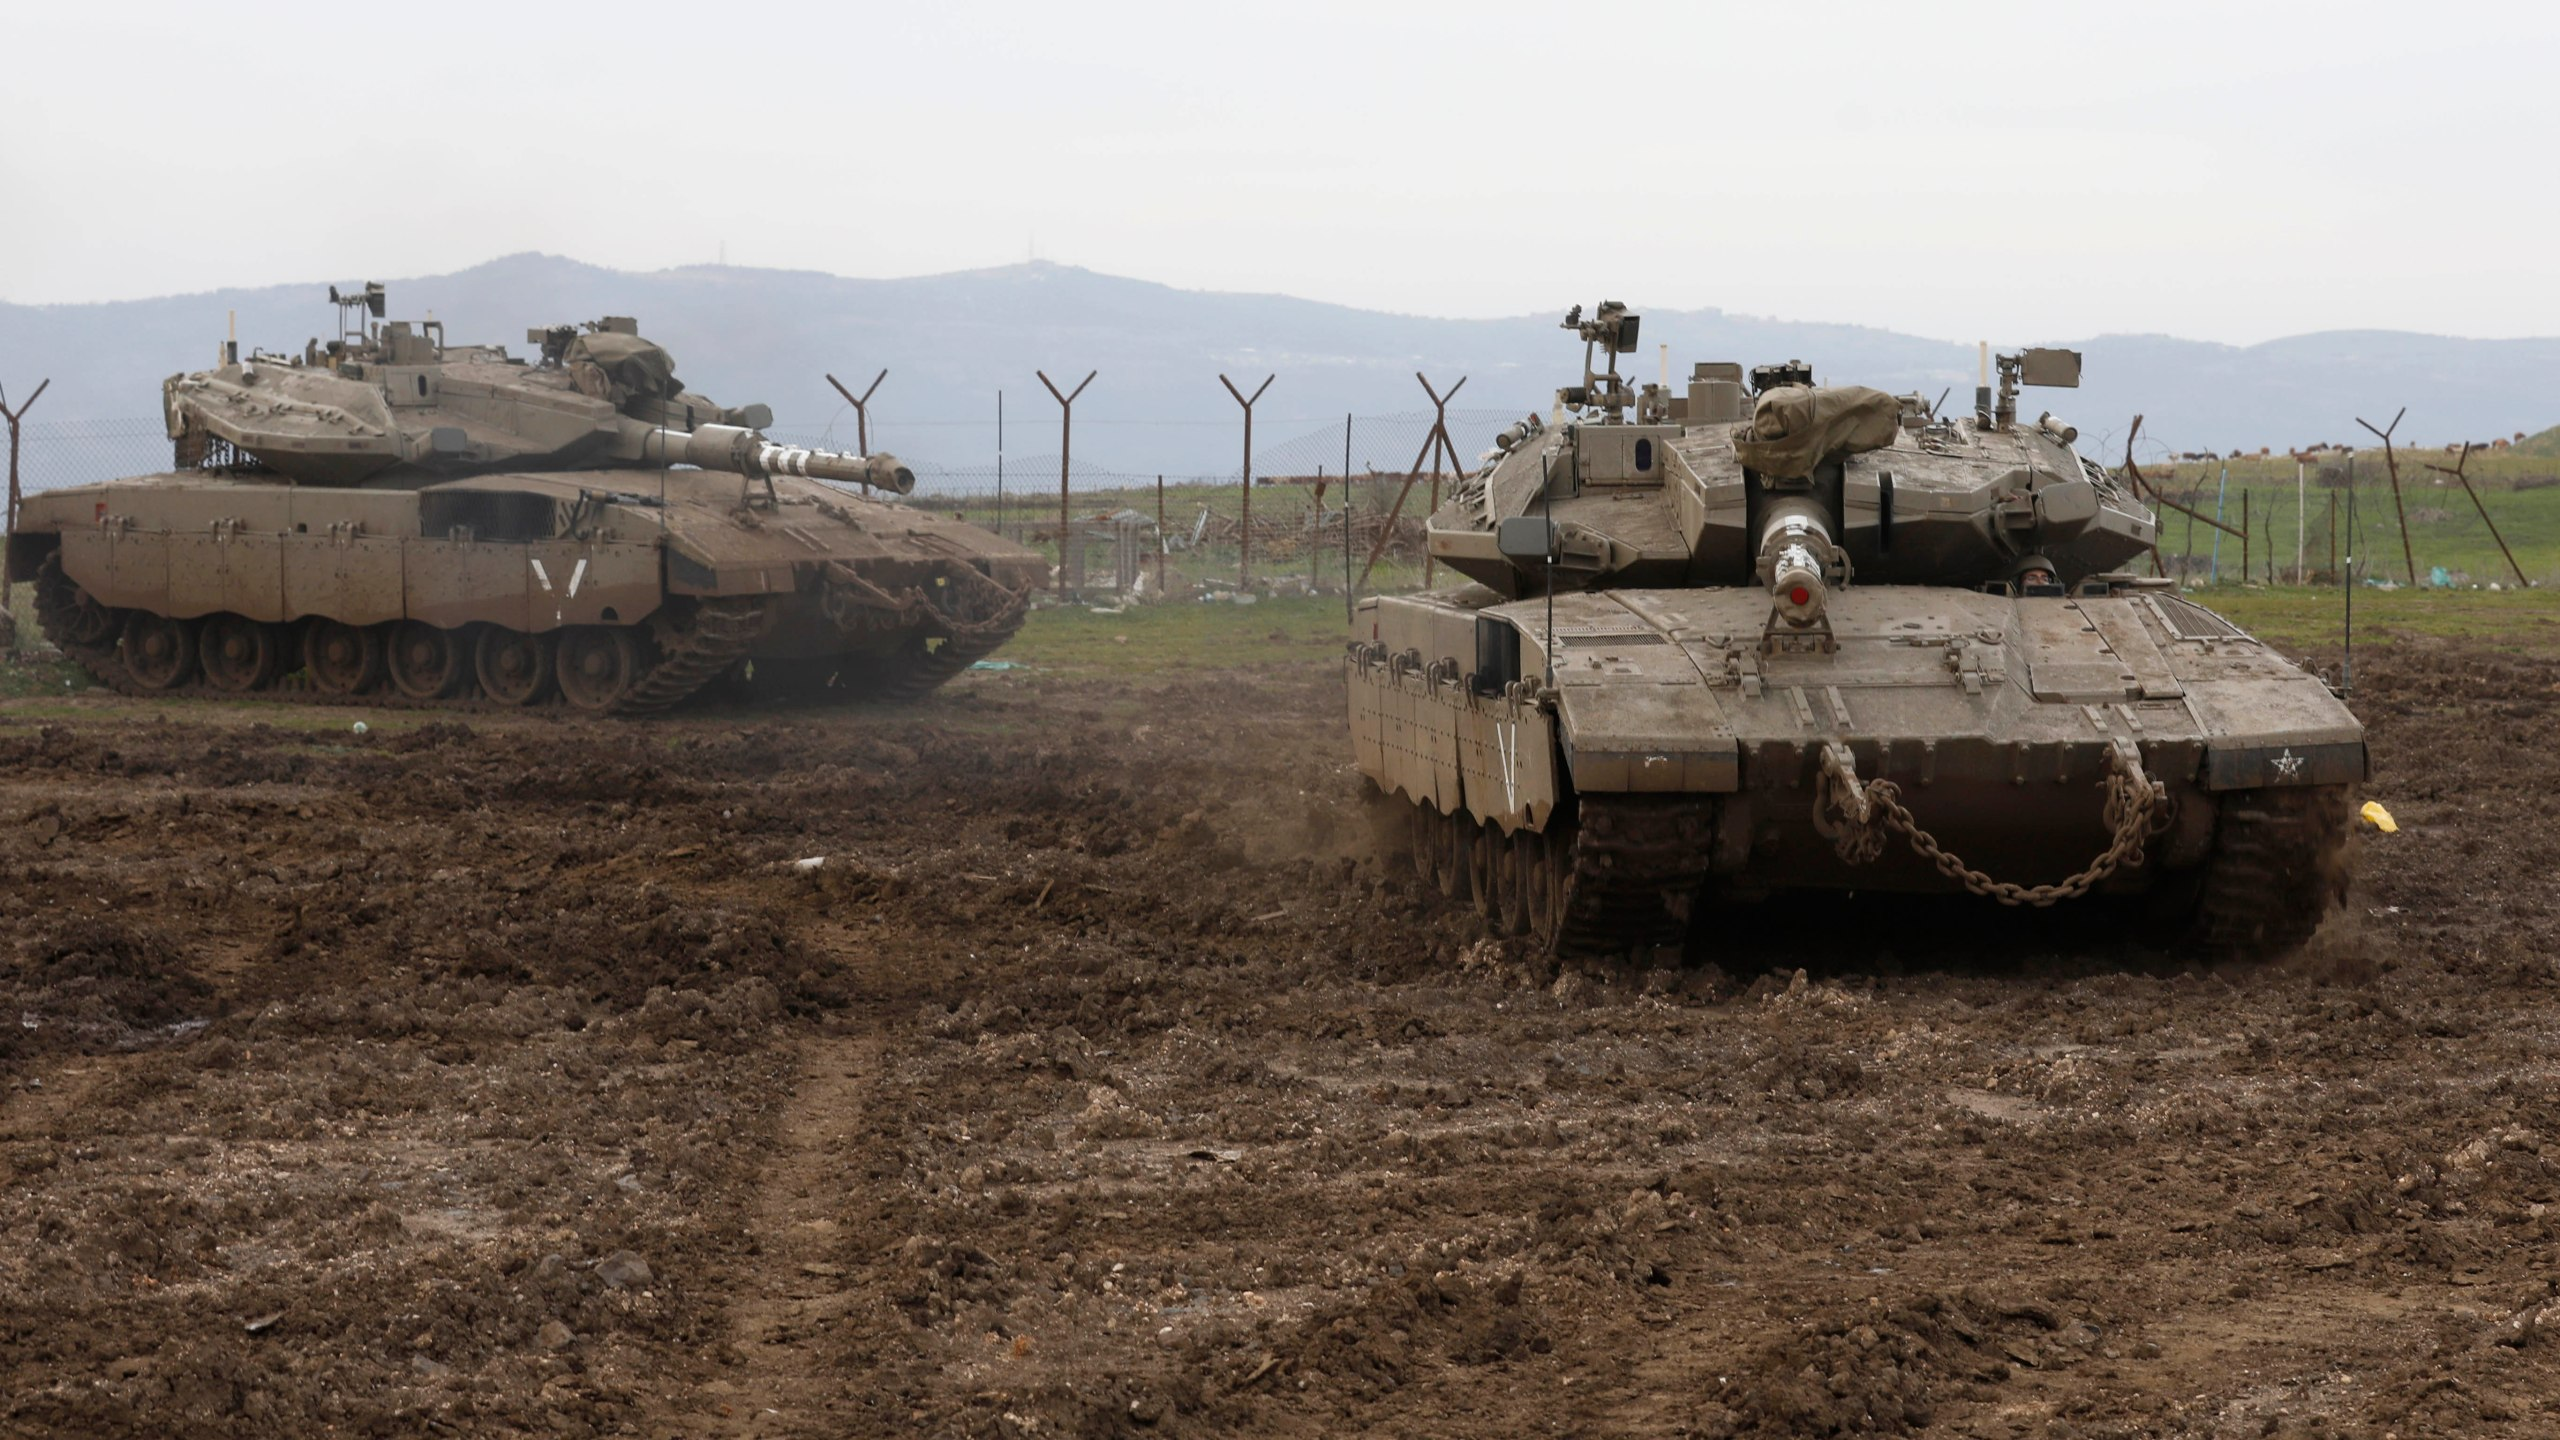 Israeli army Merkava tanks gather in the Israeli-annexed Golan Heights, on January 20, 2019. - Israel's military said its air defence systems intercepted a rocket fired from Syria today, after Damascus accused Israel of carrying out air raids. 'A short while ago, a rocket was fired at the northern Golan Heights and was intercepted by the 'Iron Dome' aerial defence system,' an Israeli military statement said. (Credit: Jalaa Marey/AFP/Getty Images)